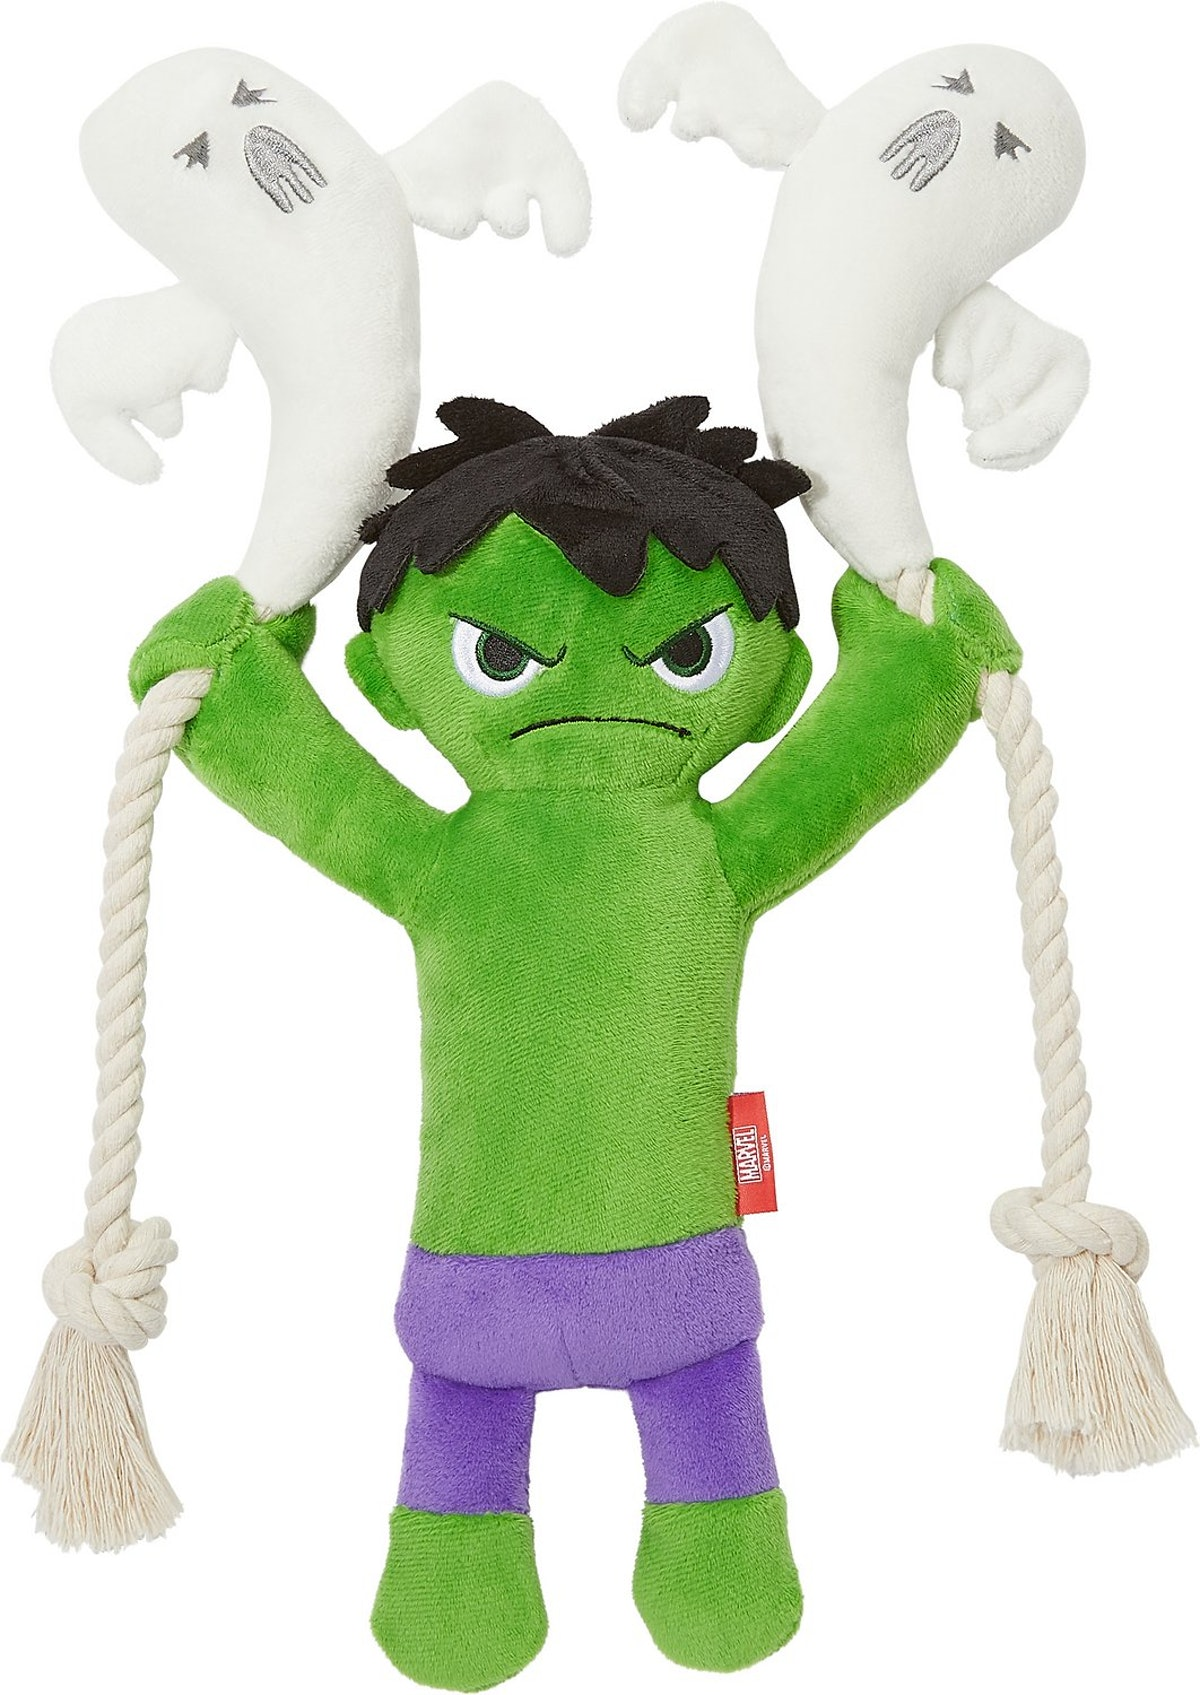 This Hulk from Marvel dog toy is part of Chewy's Disney Halloween toy collection.